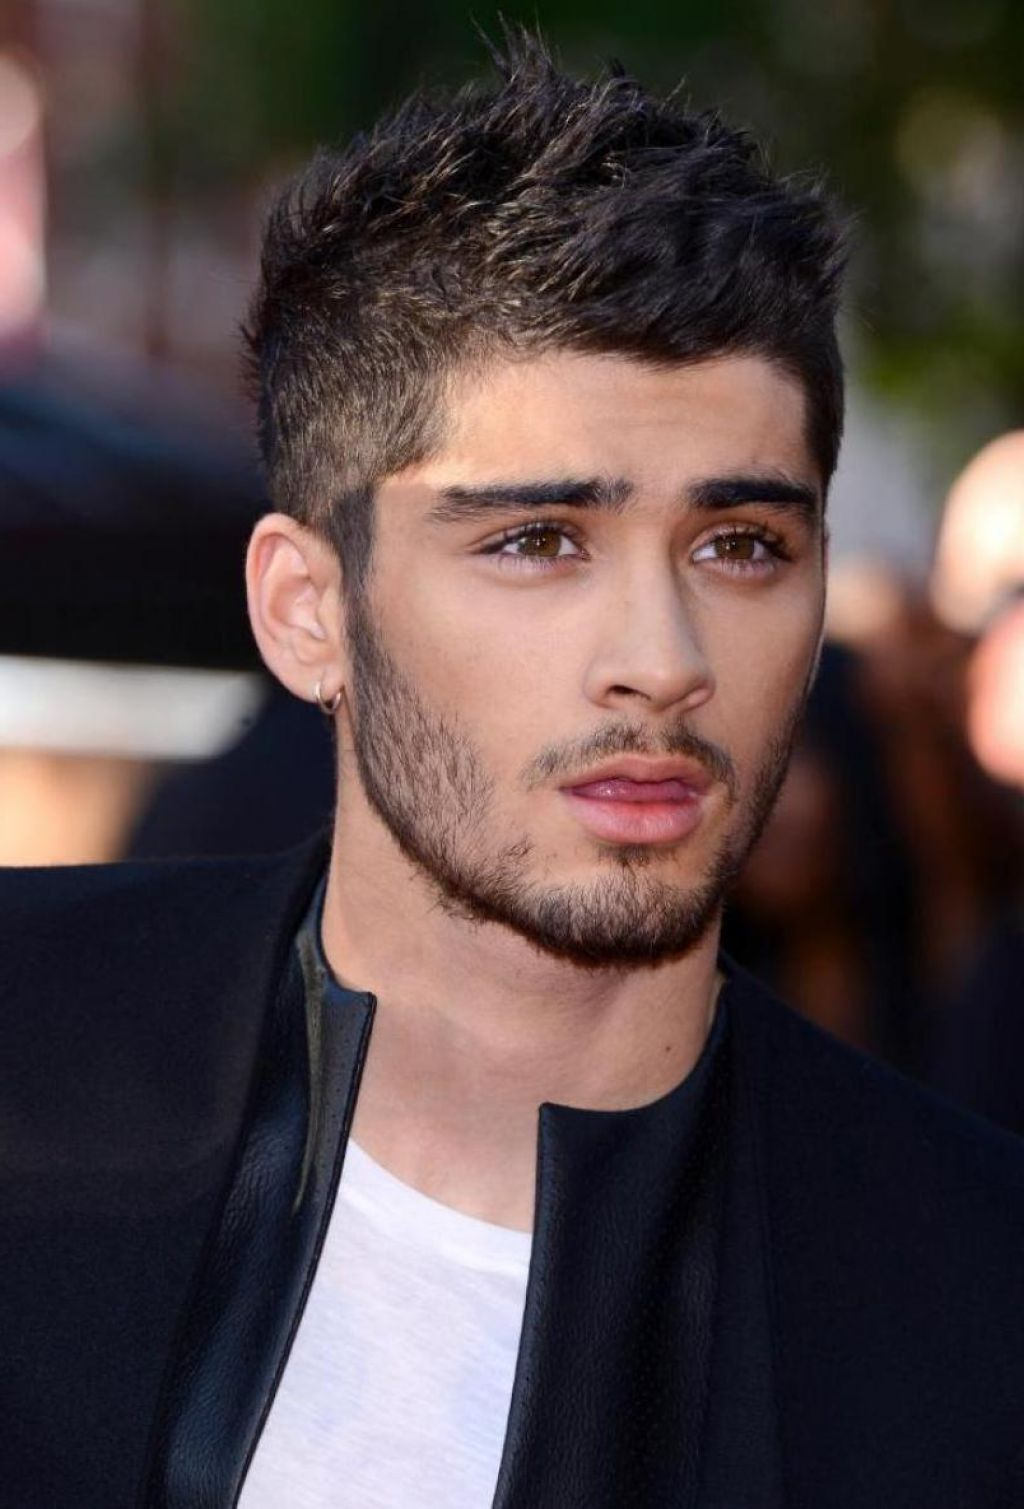 Malik Hairstyle Inspiration - Zayn malik hairstyle from backside 2014